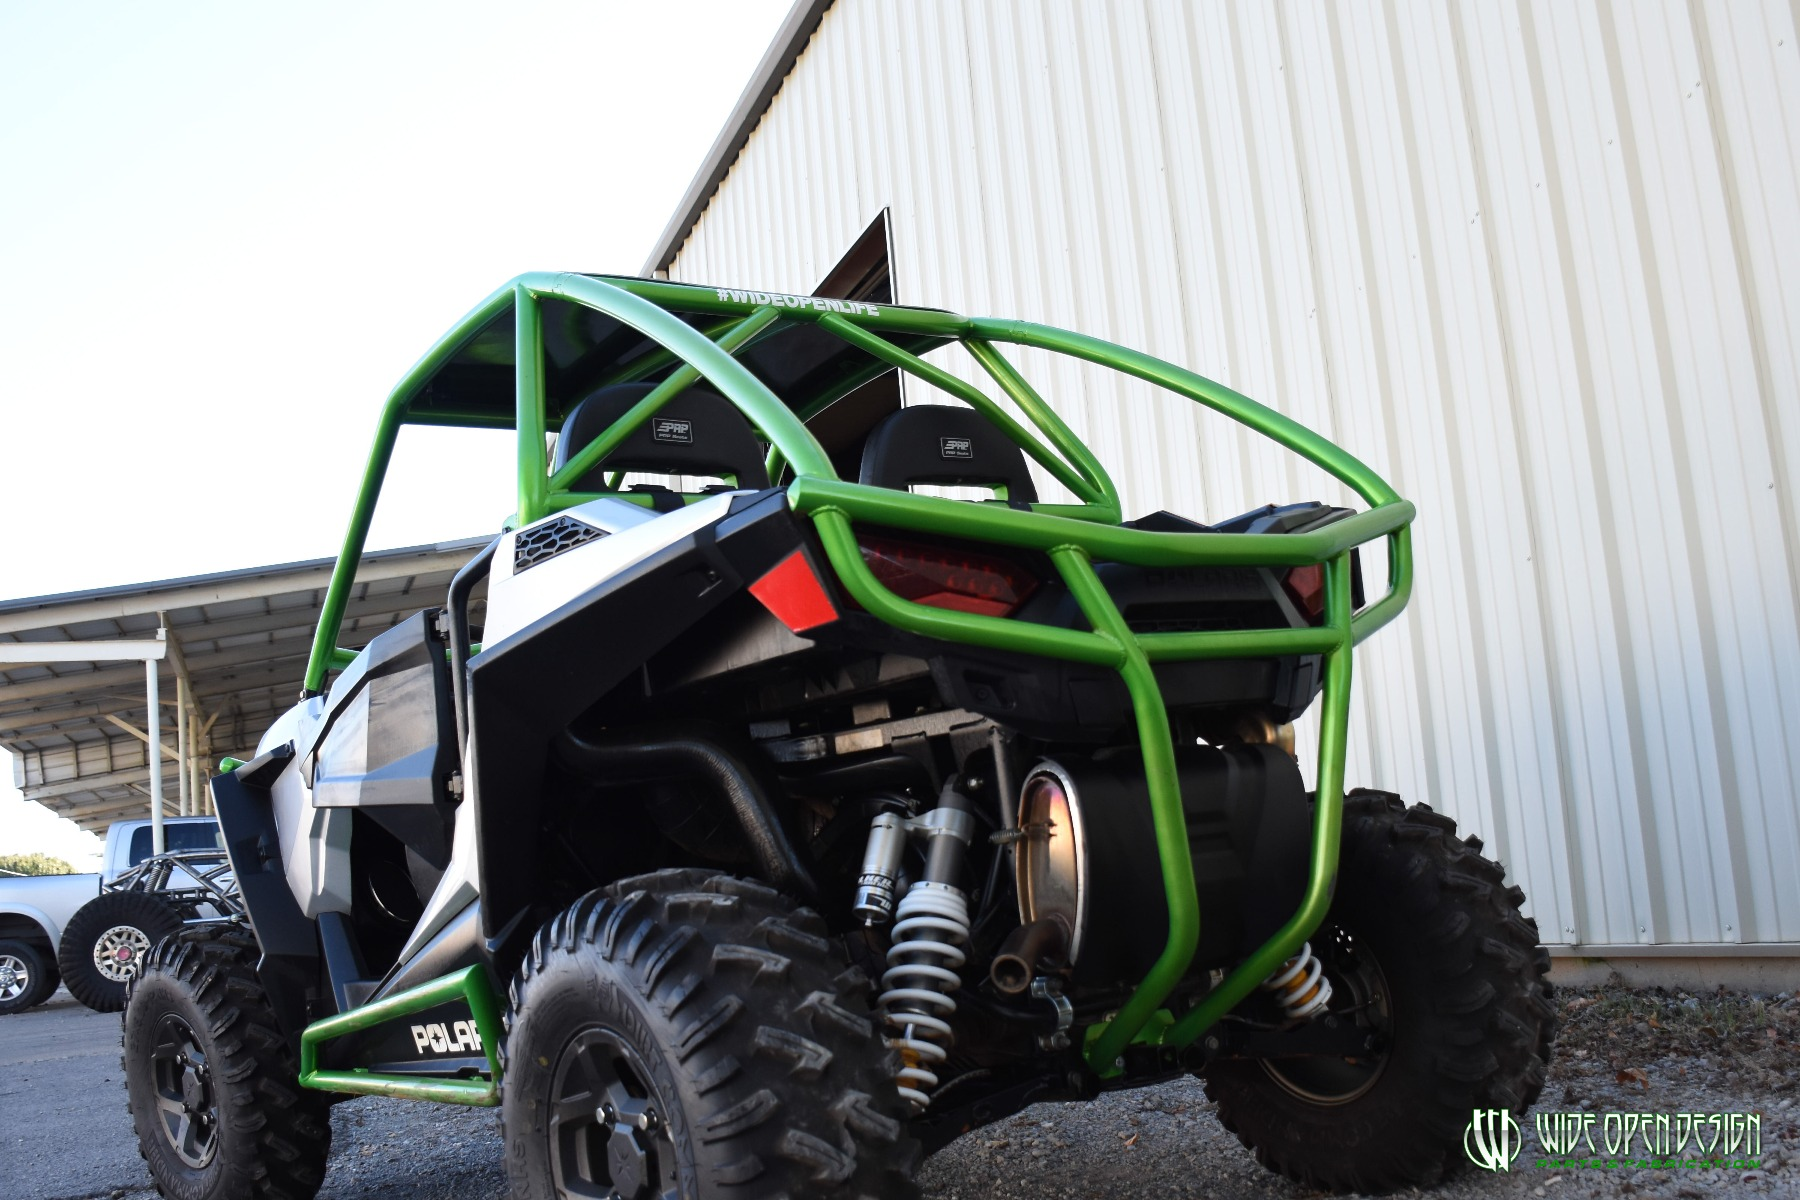 Jason's 1000s RZR with Wide Open Design Rolled Roof Cage, Front Bumper with Tie In, and Rocker Guards 31